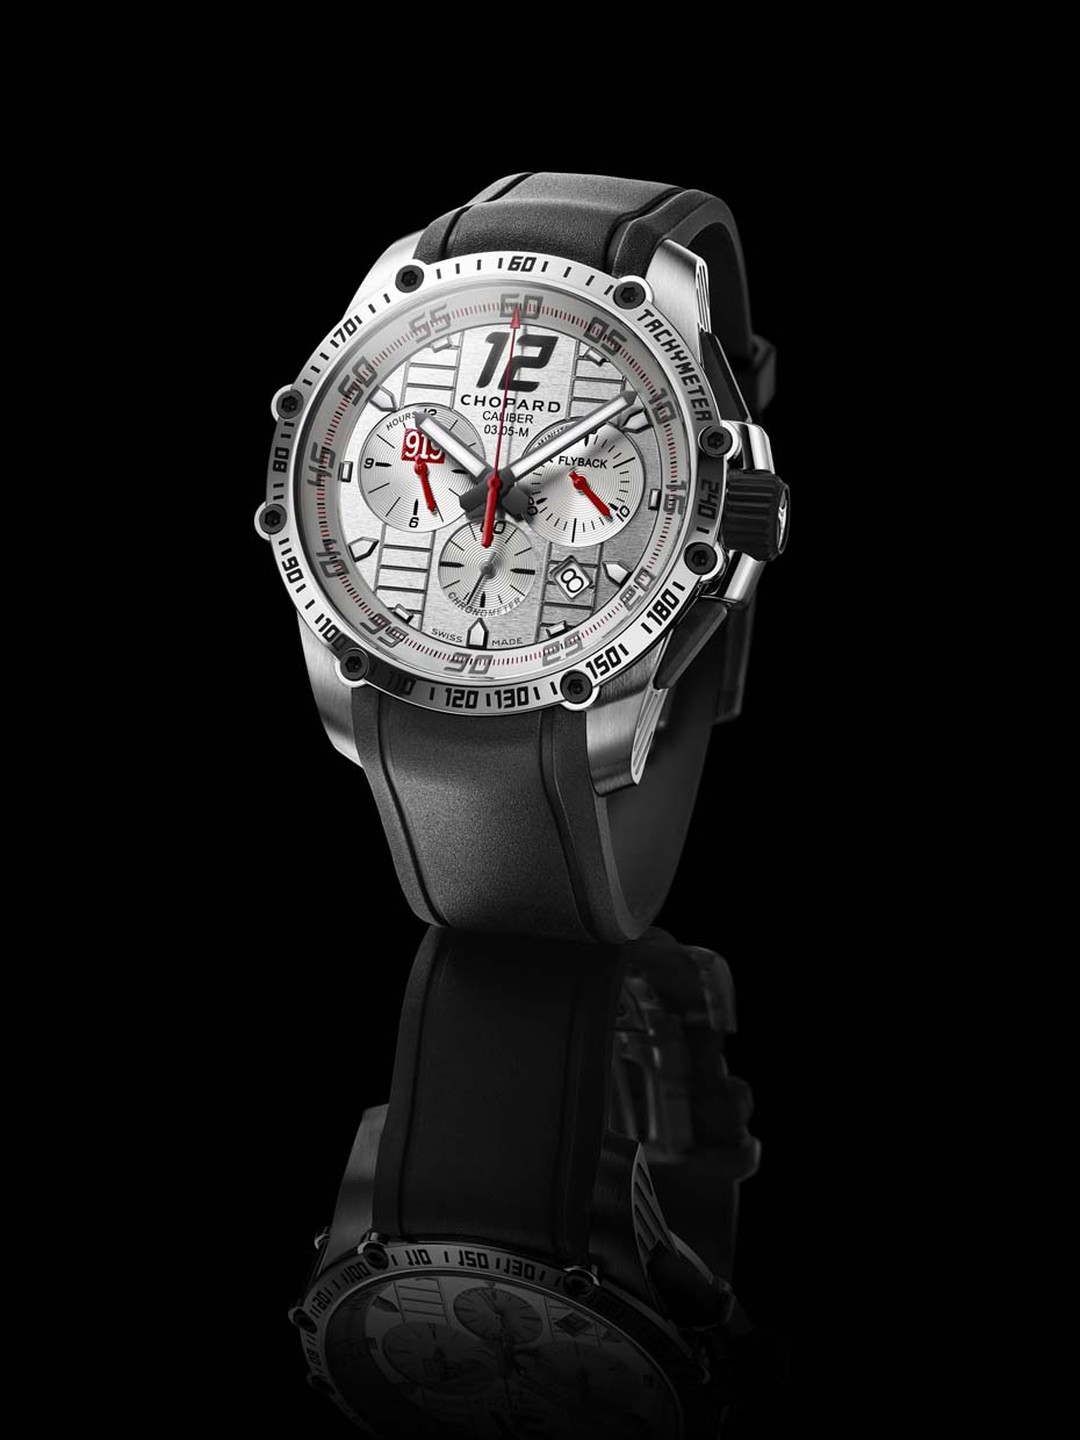 Limited to 919 pieces, the Chopard Superfast Chrono Porsche 919 Edition watch features the red Porsche 919 logo at 9 o'clock.